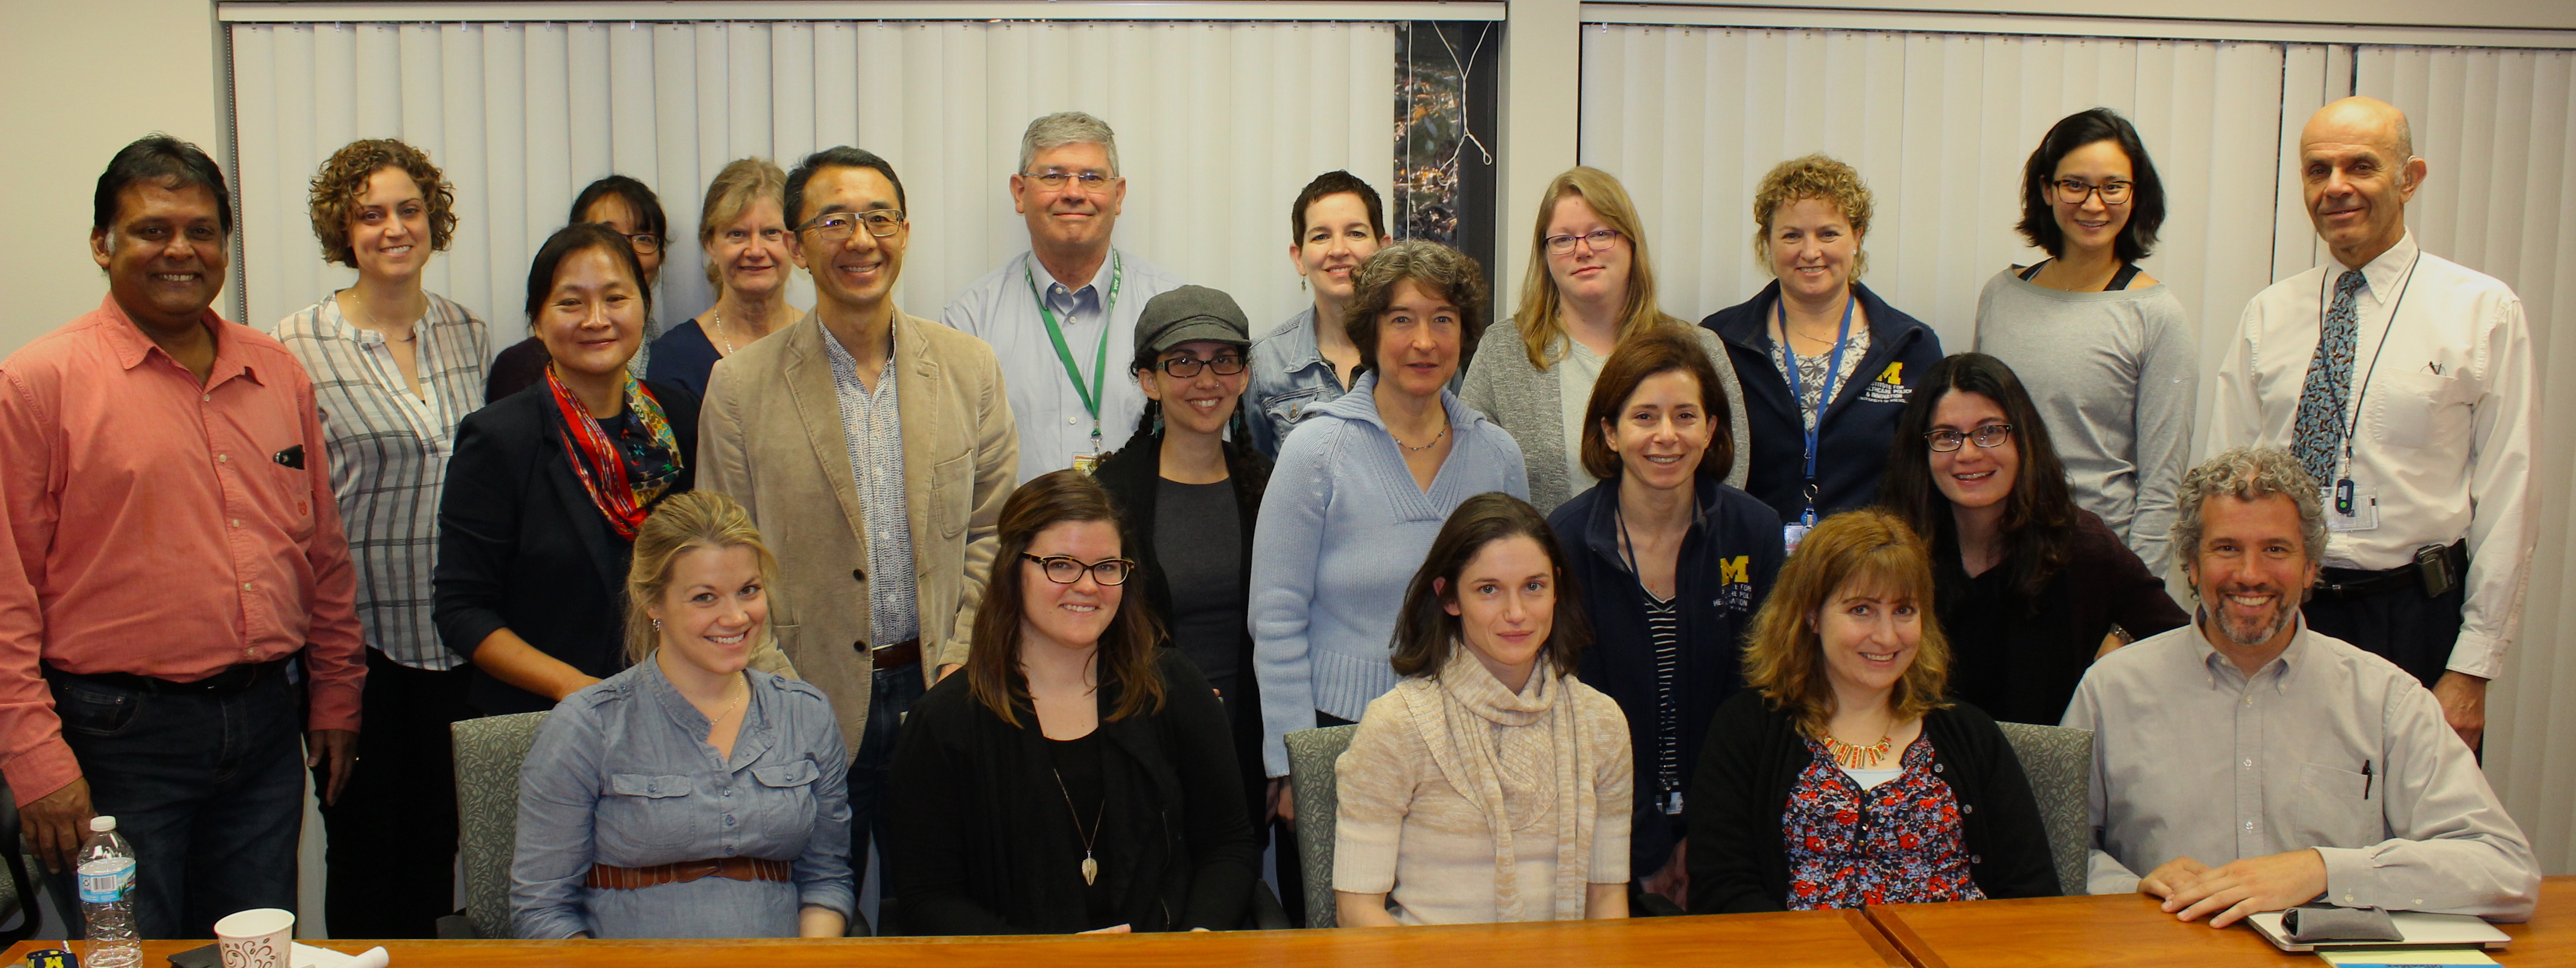 Family medicine Research Faculty and Staff